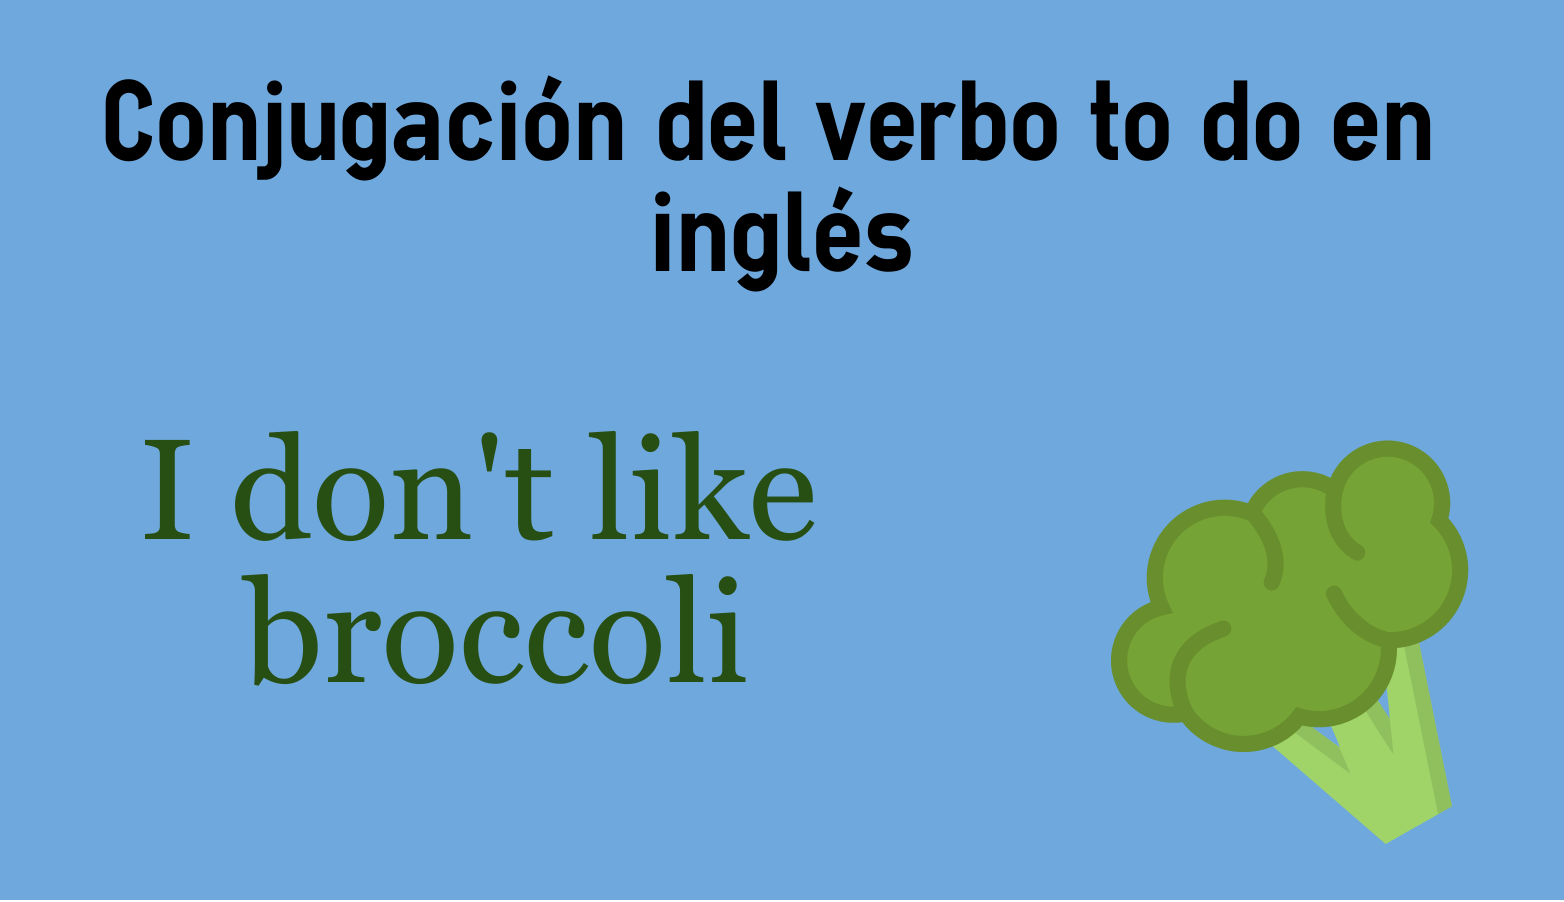 Conjugación Del Verbo To Do En Inglés Colanguage